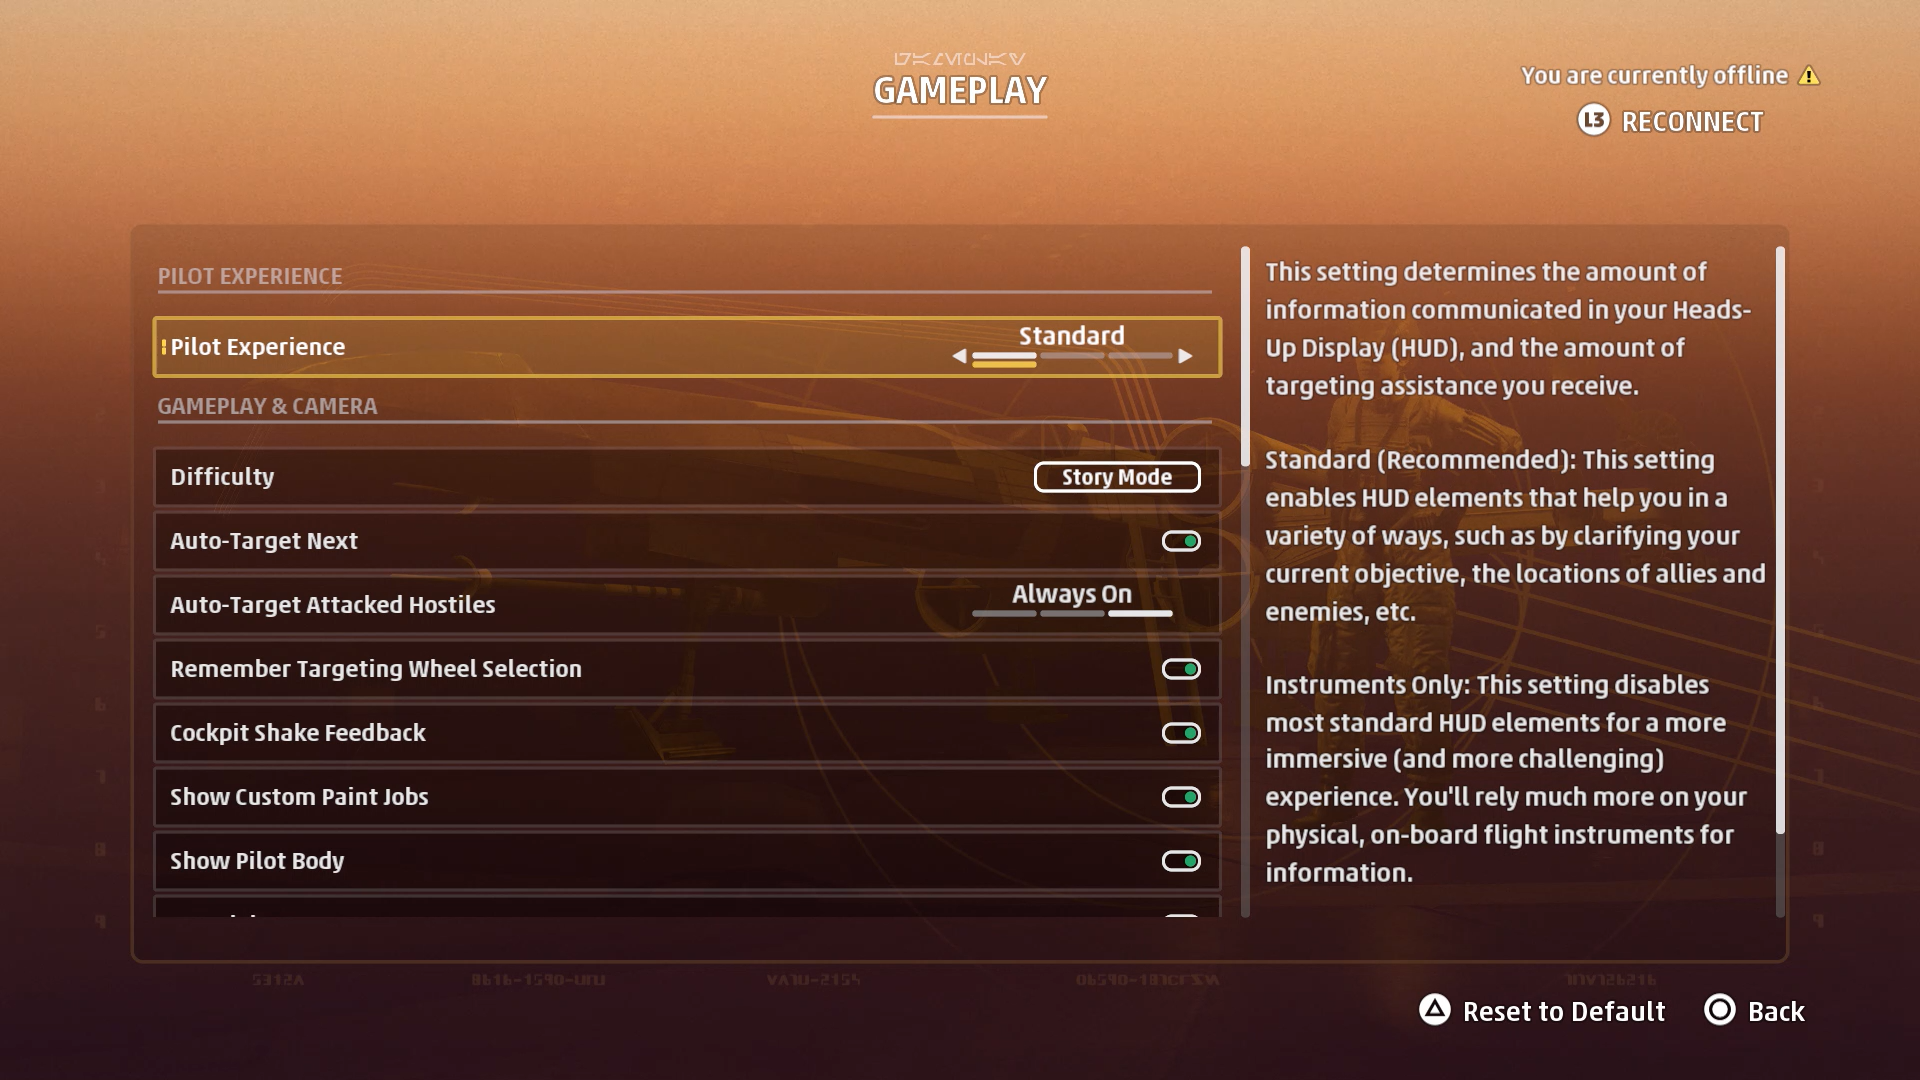 A screenshot showing the Star Wars: Squadrons GAMEPLAY options menu.